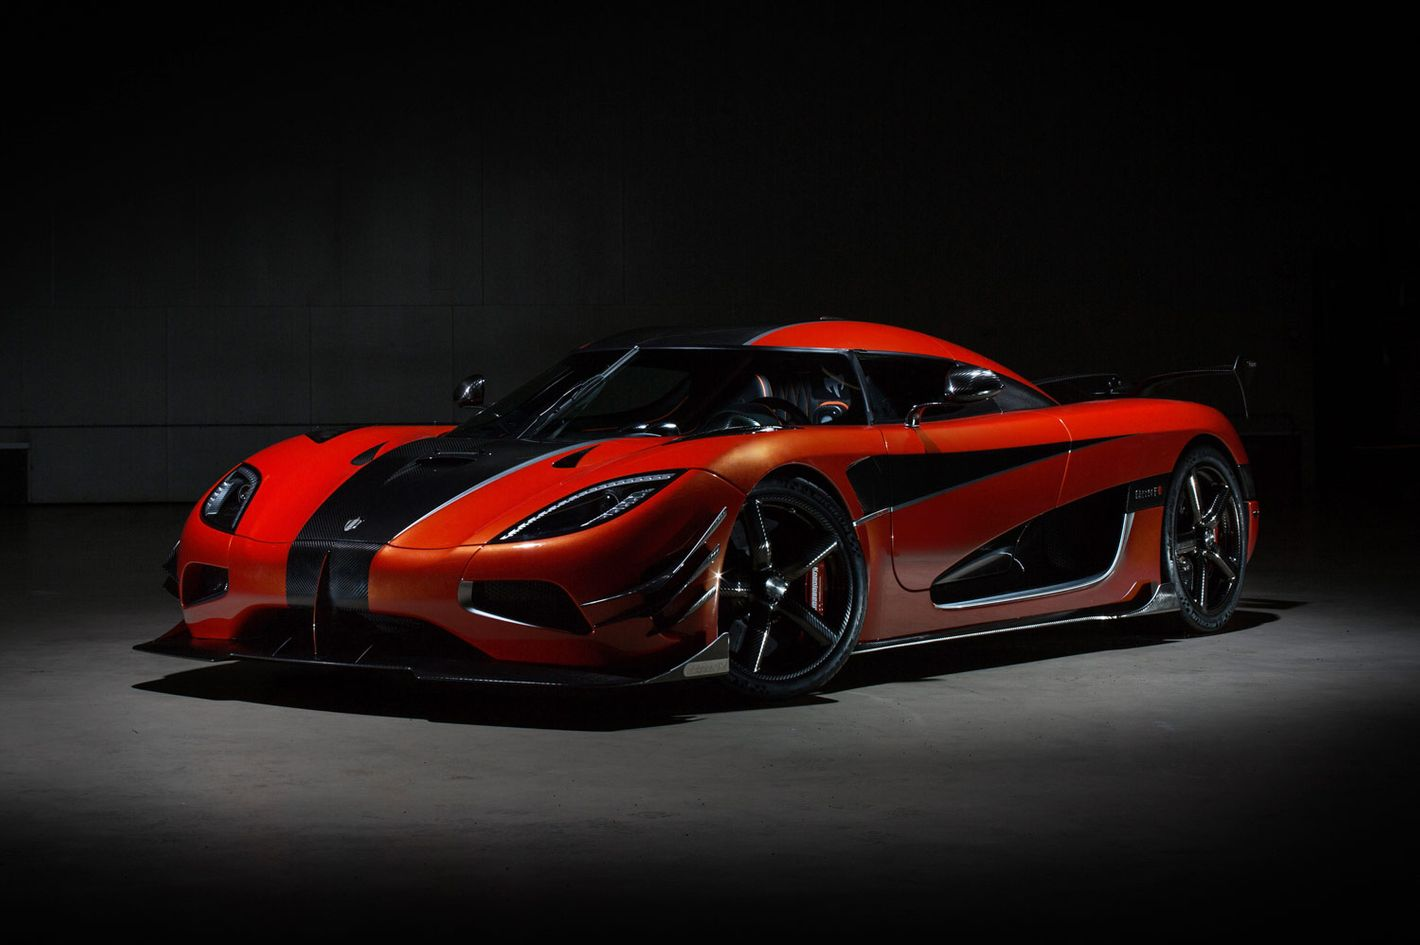 The Difference Between A Supercar A Hypercar And A Megacar